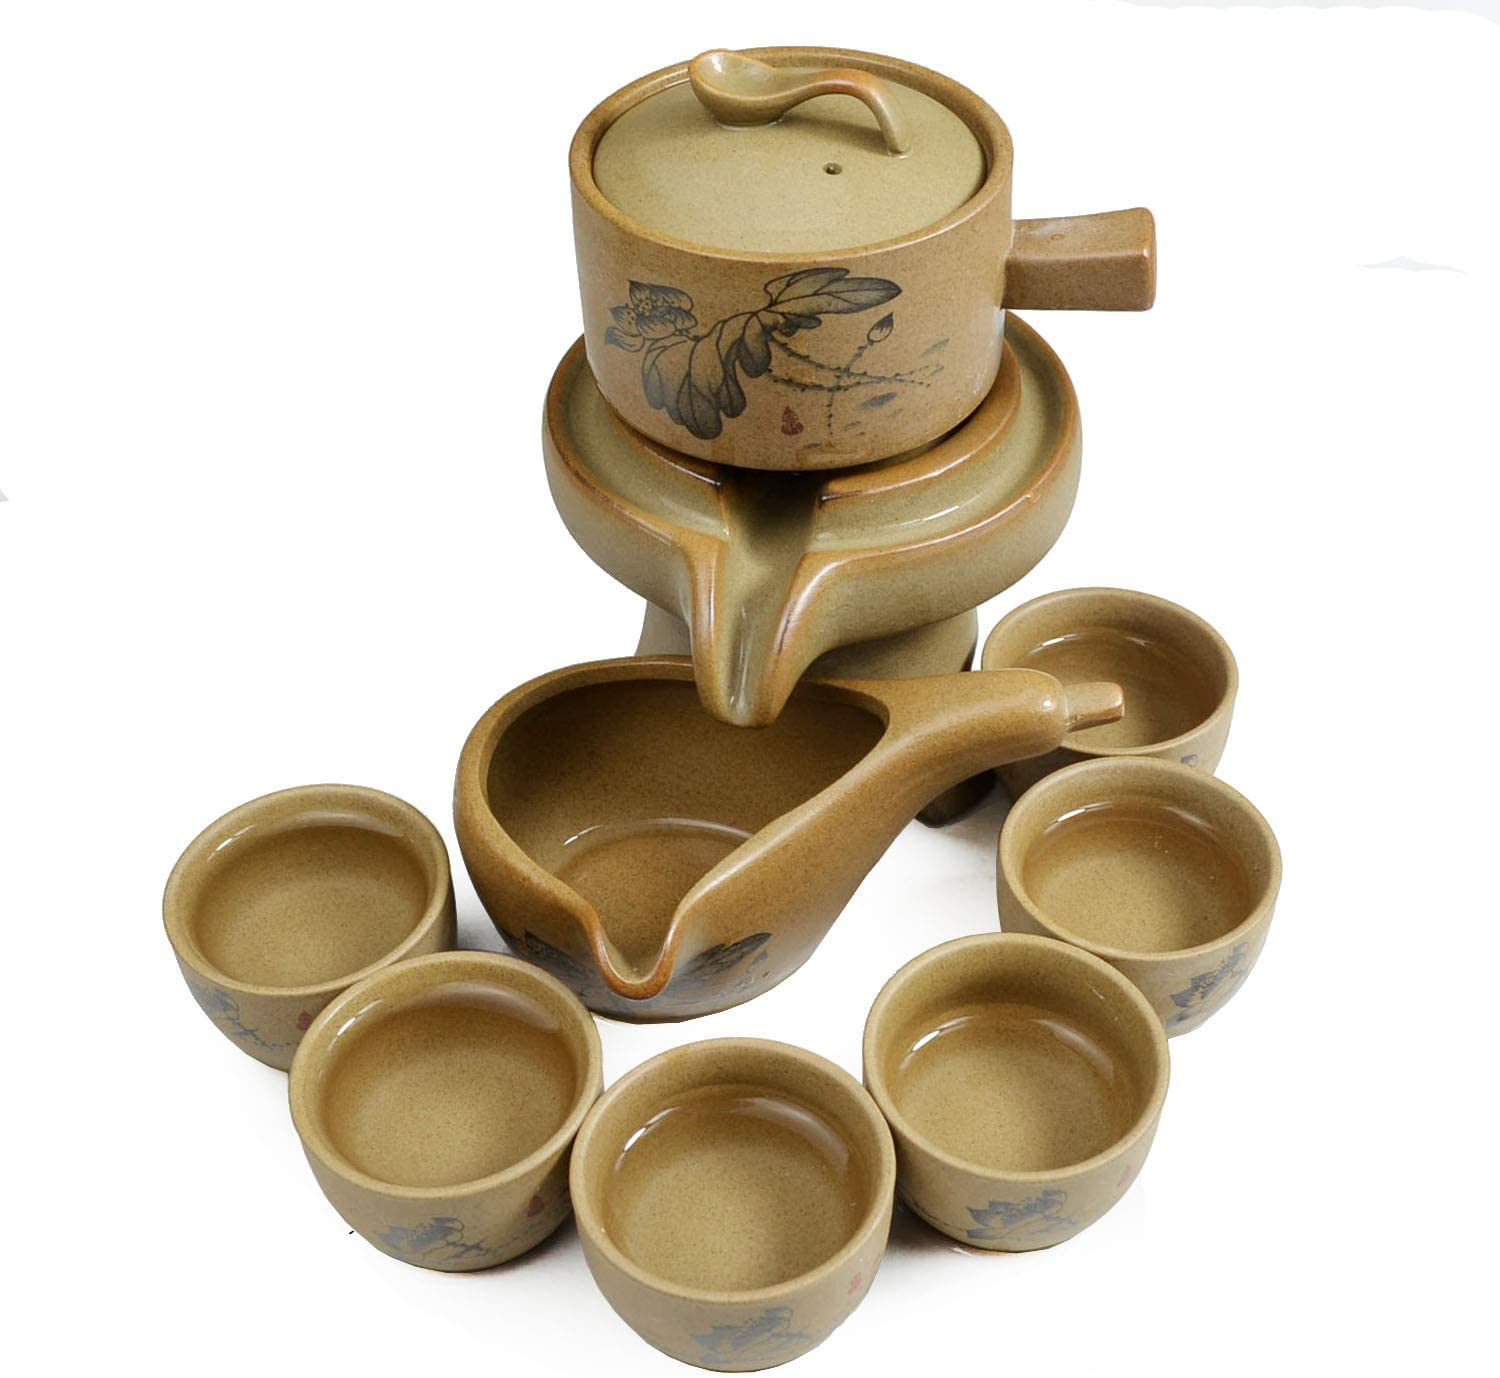 Chinese Gongfu Tea Gift Set Stone-Mill Lotus Design Teapot with 6 Cups Kung Fu Tea Ceremony Party Home Office Decor